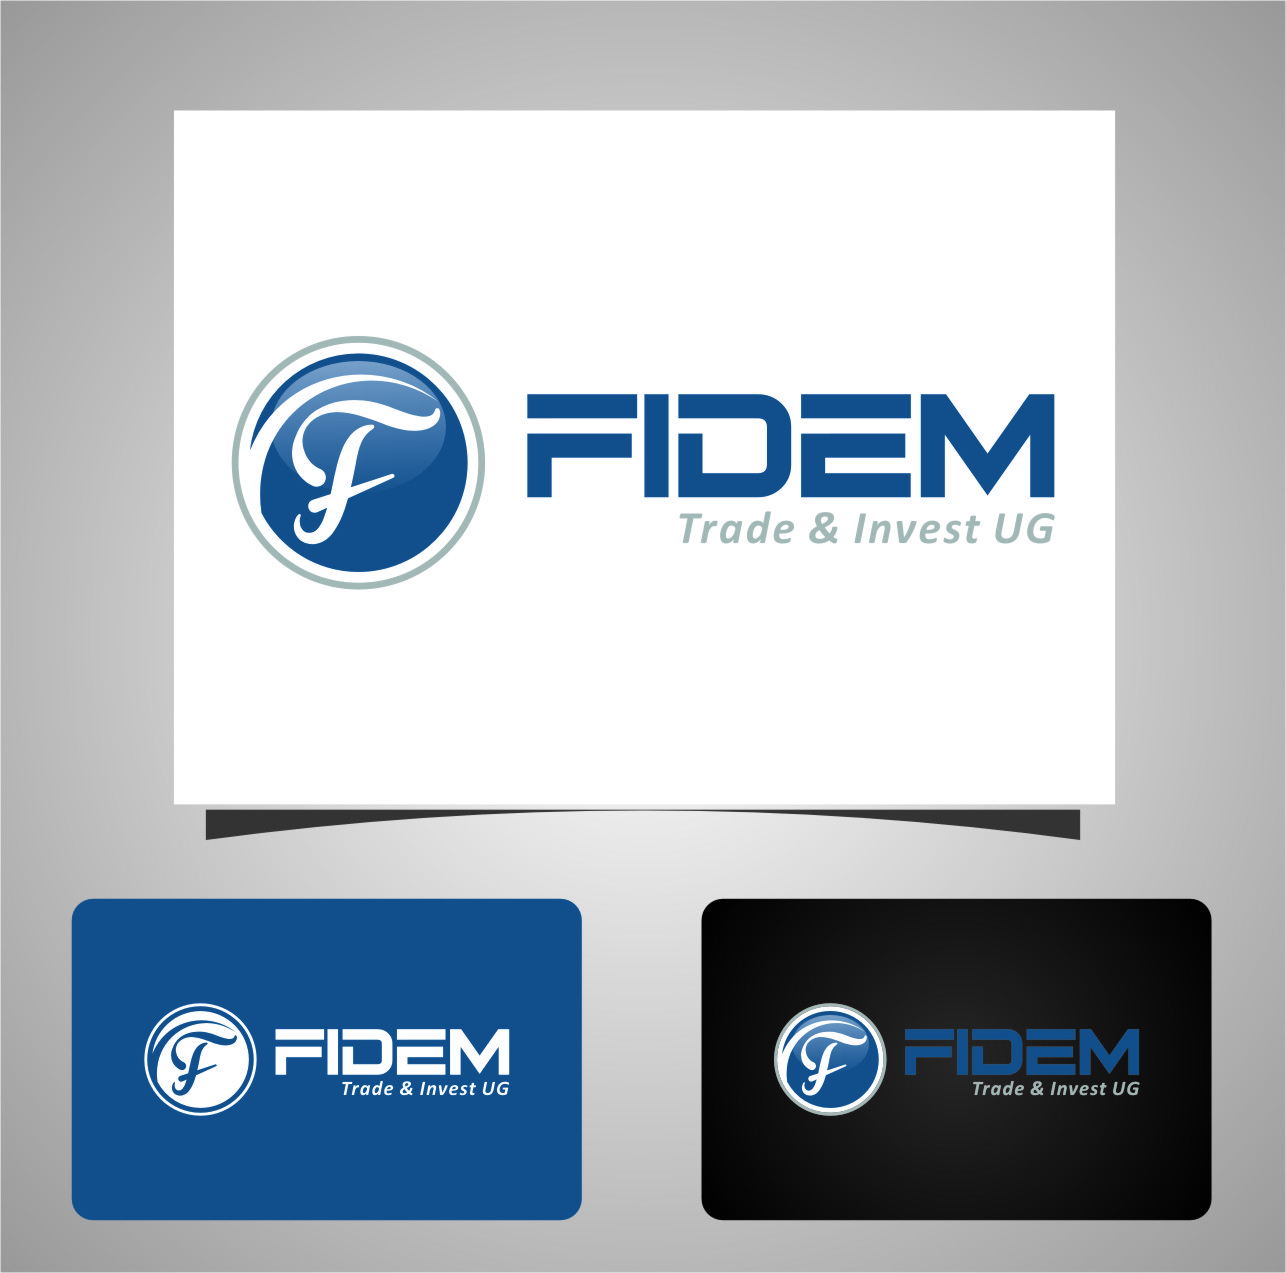 Logo Design by Ngepet_art - Entry No. 794 in the Logo Design Contest Professional Logo Design for FIDEM Trade & Invest UG.